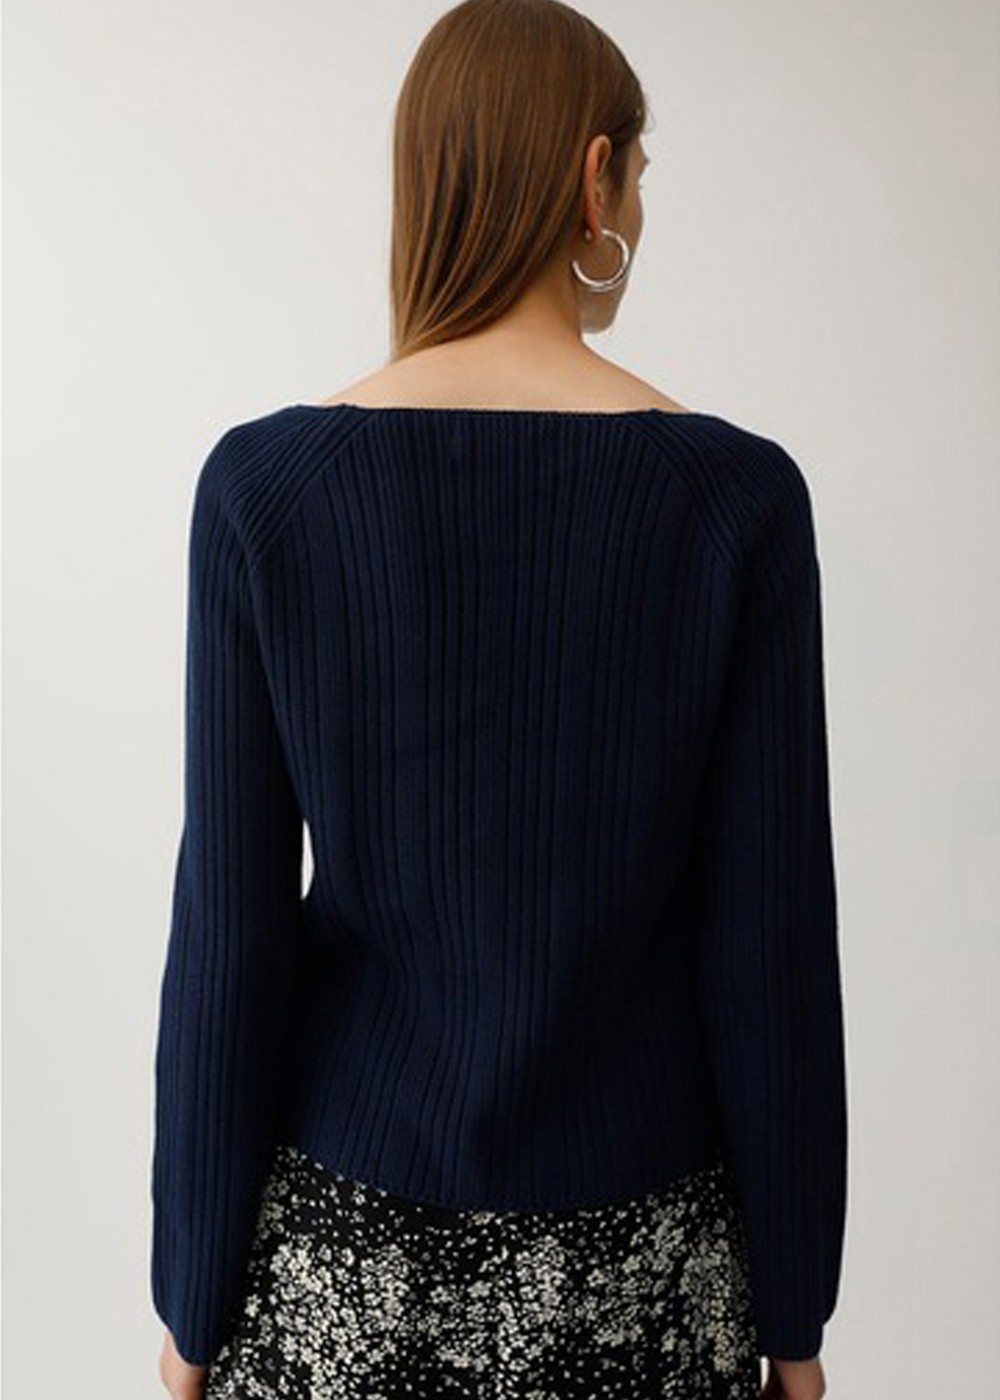 【最大60%OFF】SQUARE NECK RIB SWEATER|NVY|ニット|MOUSSY